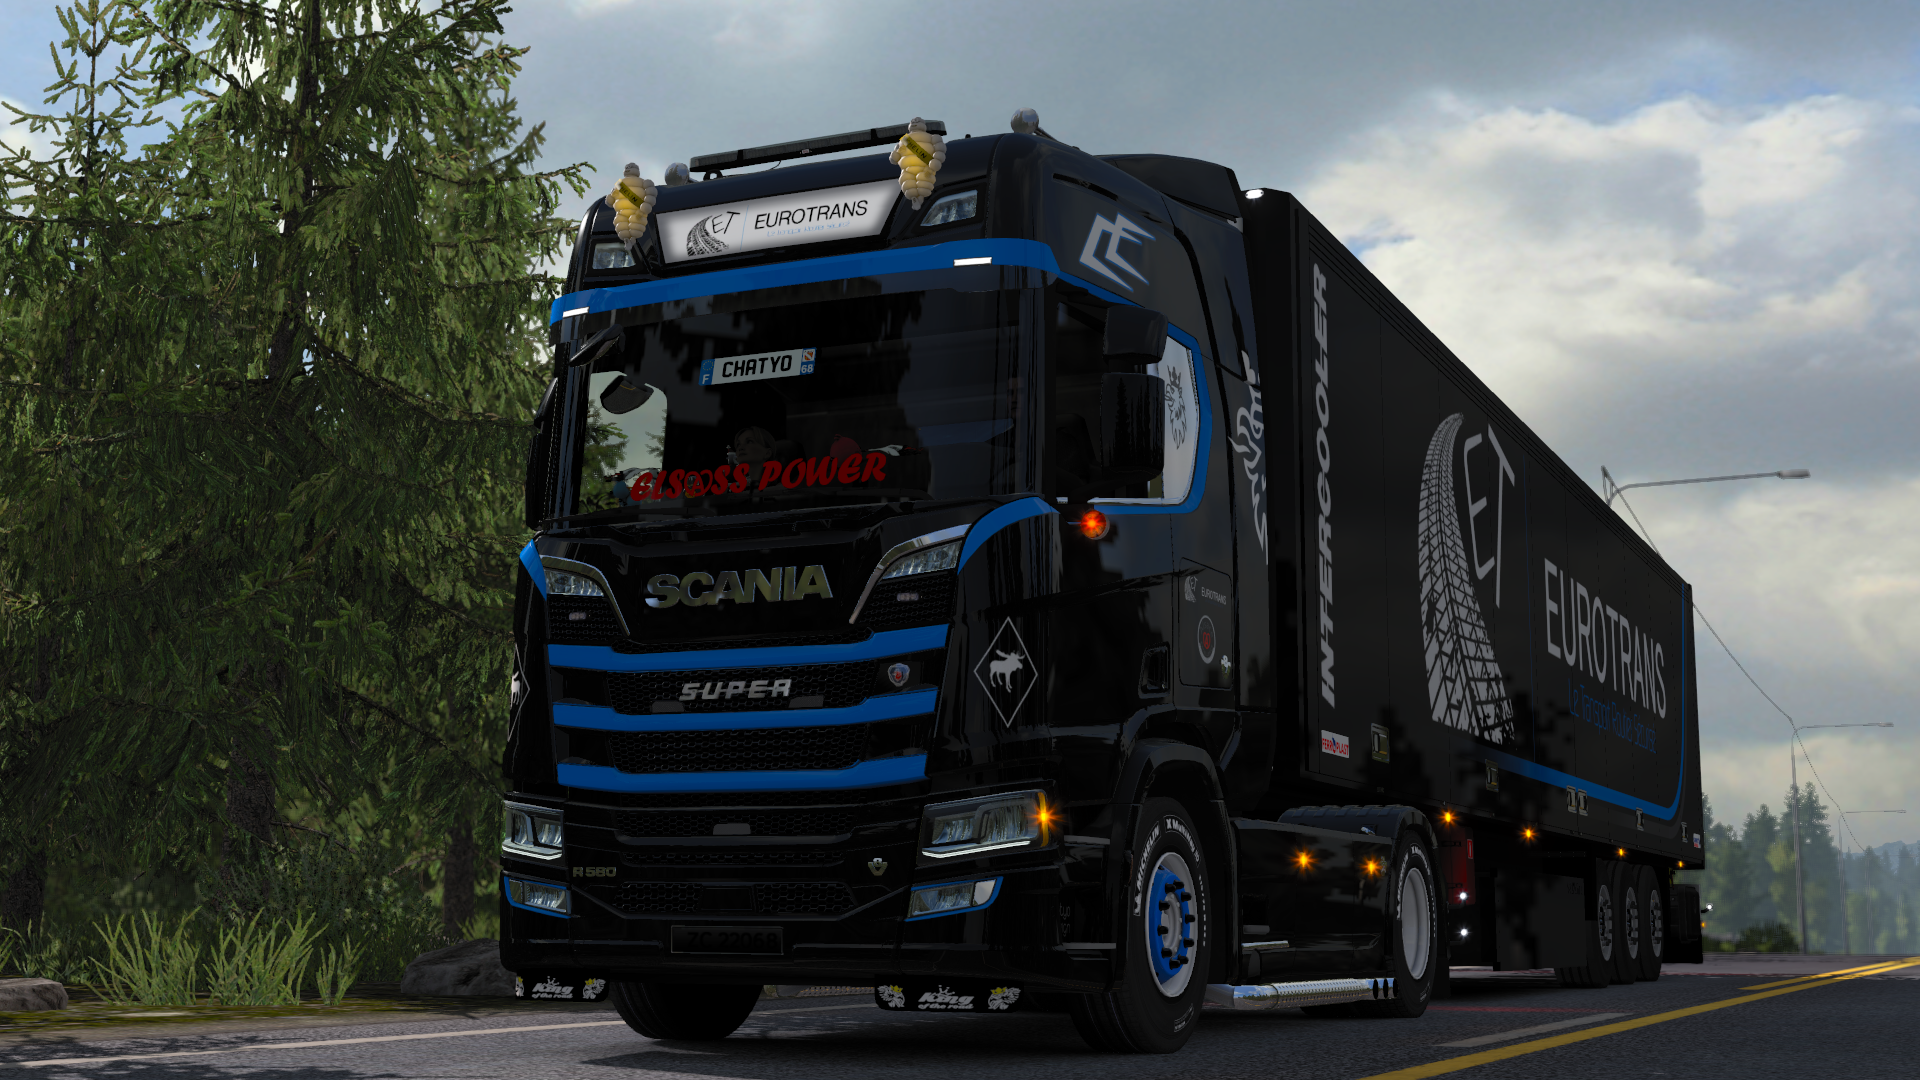 ets2_20190427_214233_00.png